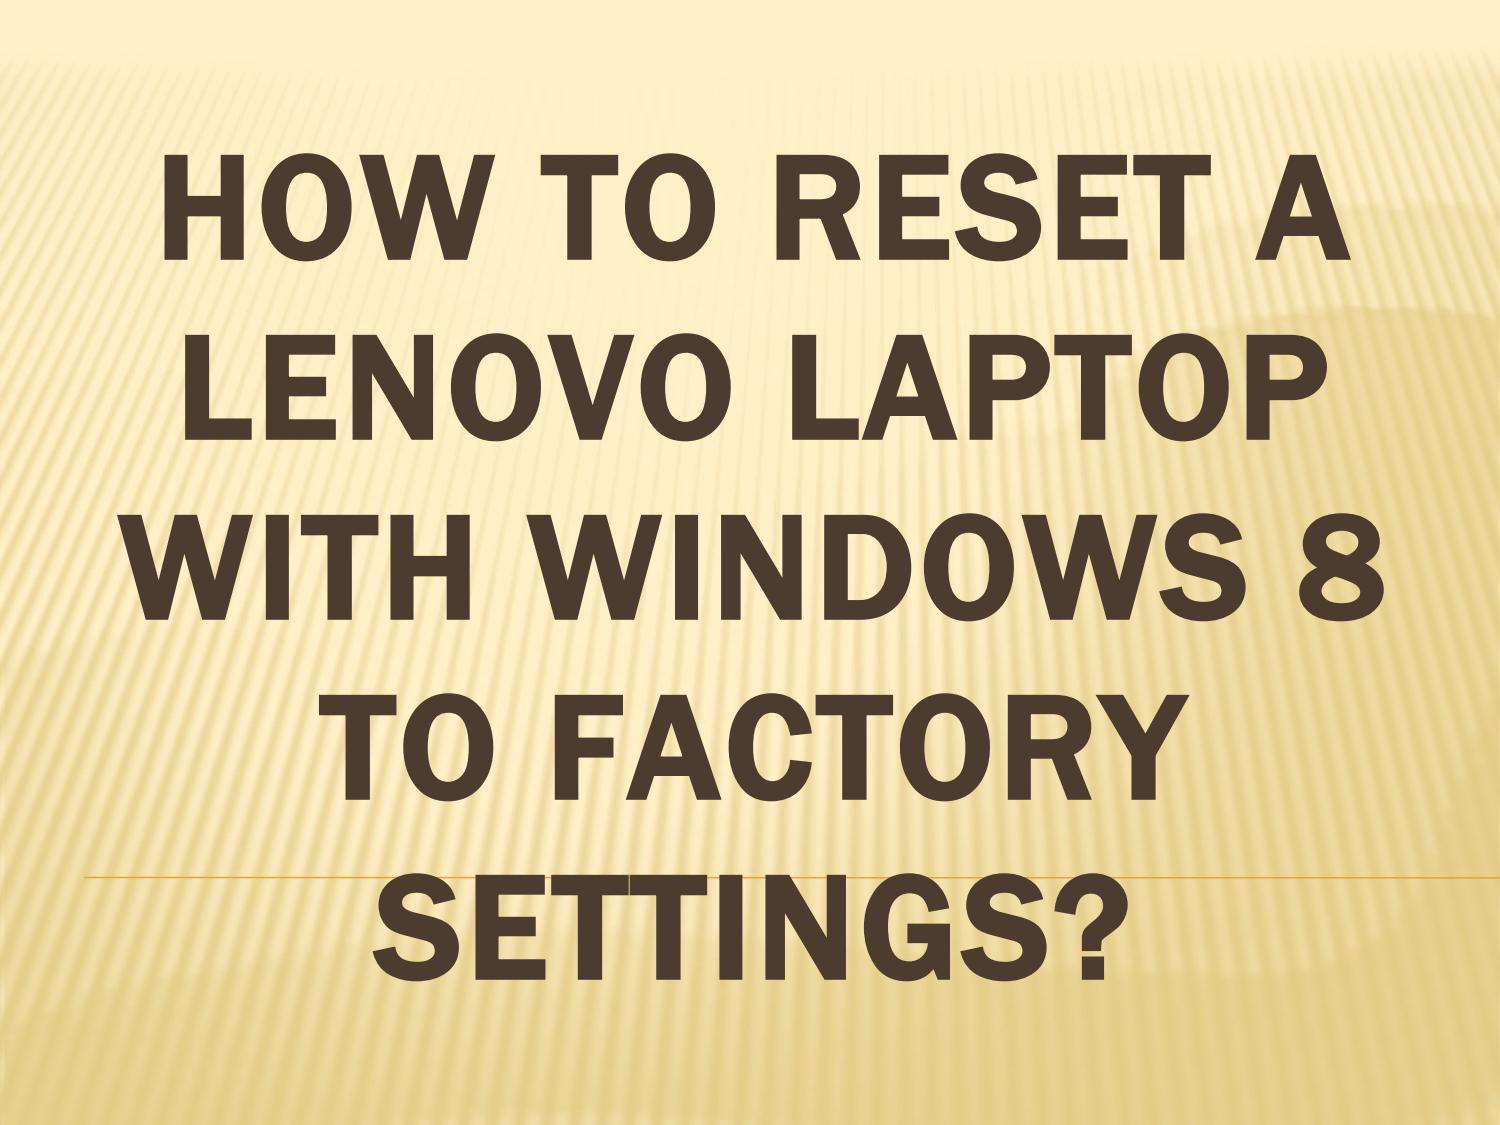 How to reset a Lenovo laptop with windows 8 to factory